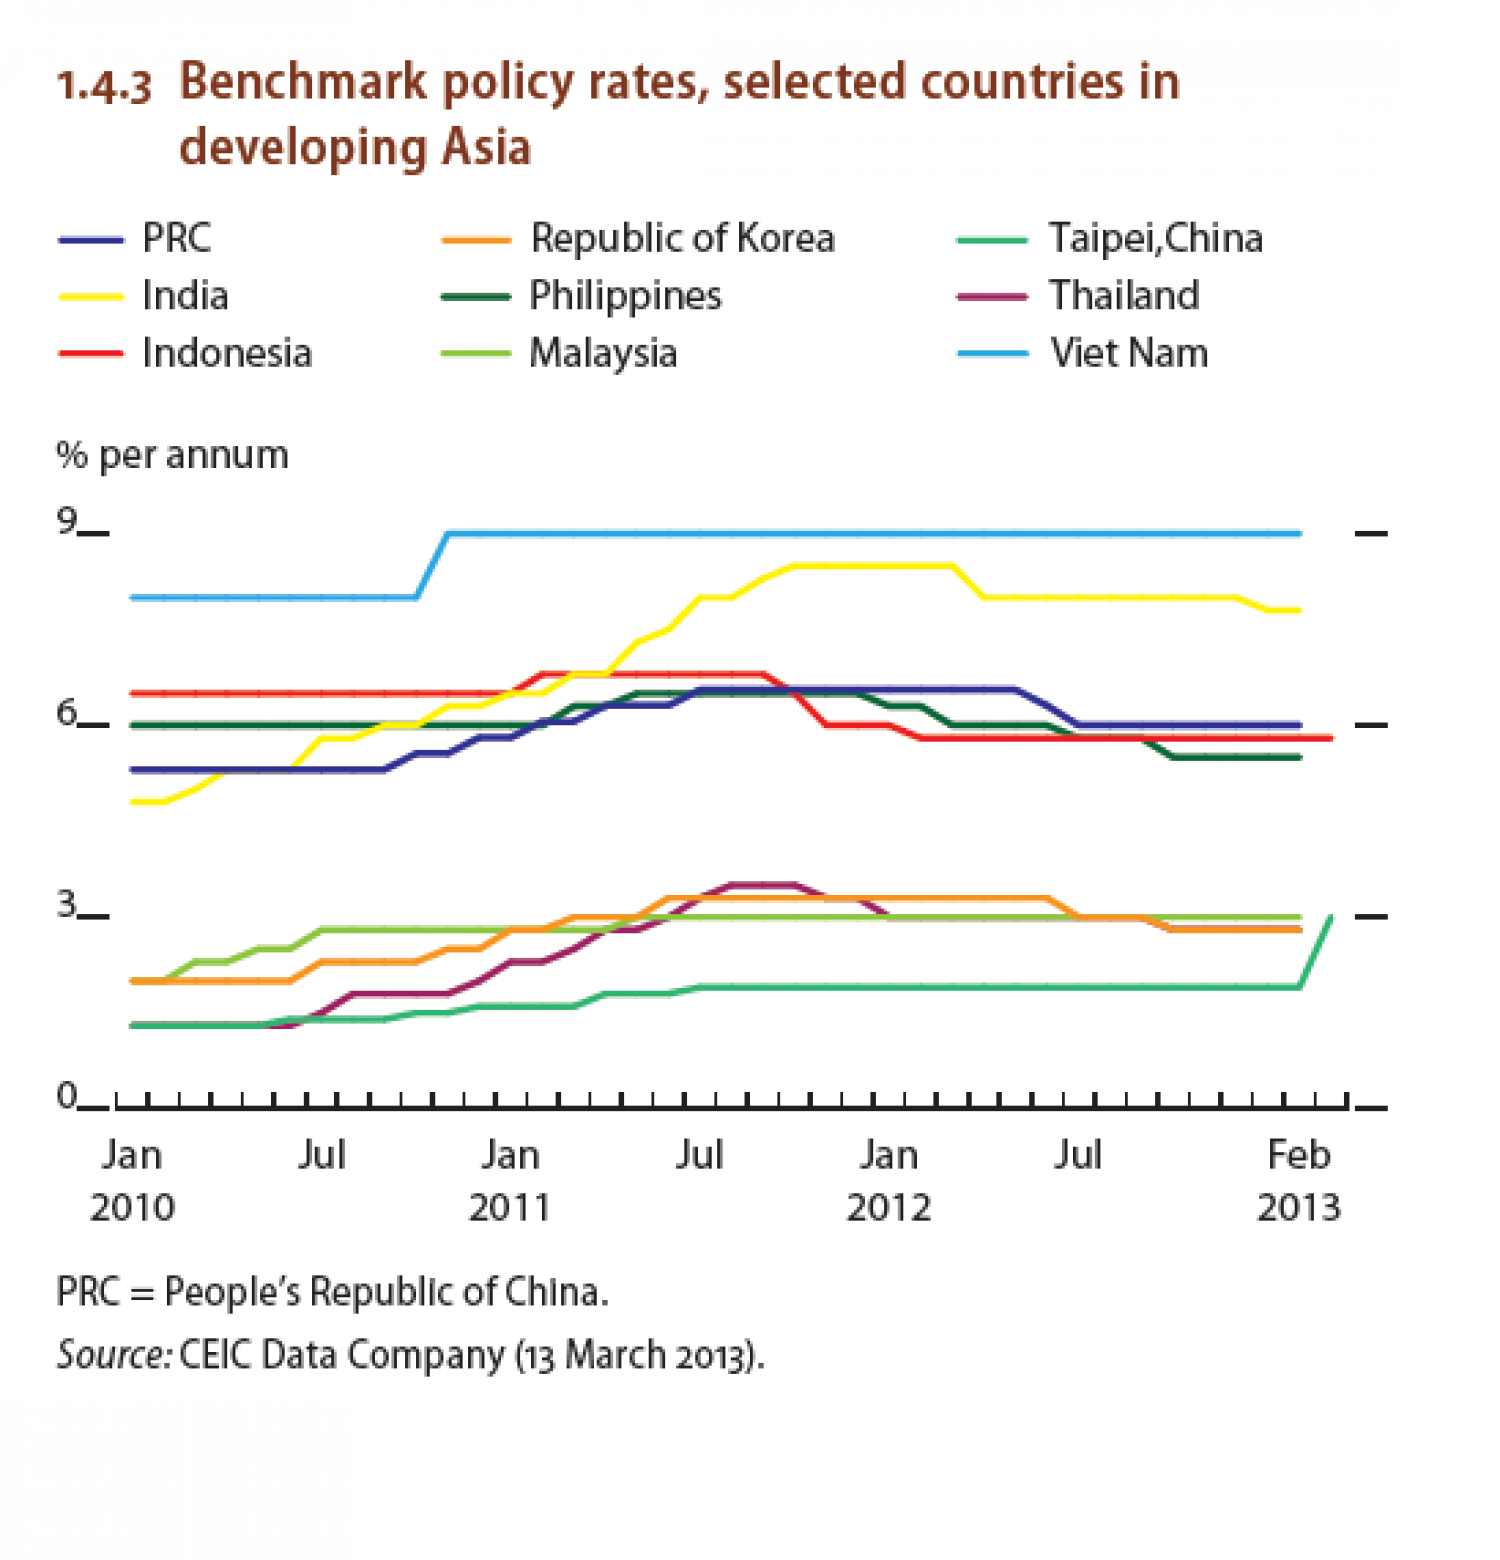 Benchmark policy rates, selected countries in developing Asia Infographic